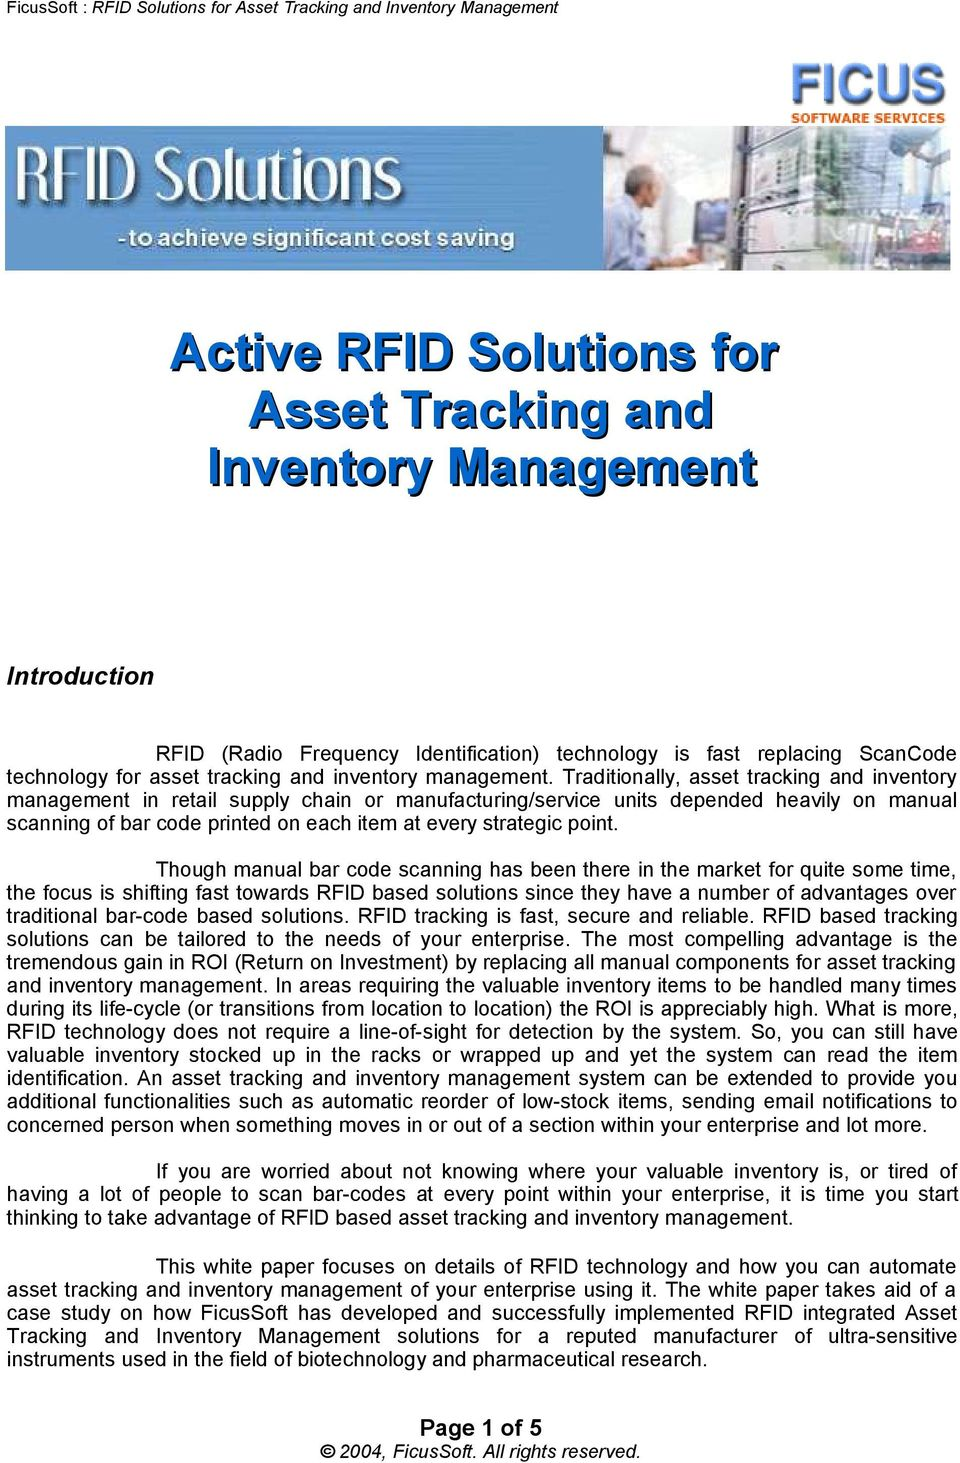 Active RFID Solutions for Asset Tracking and Inventory